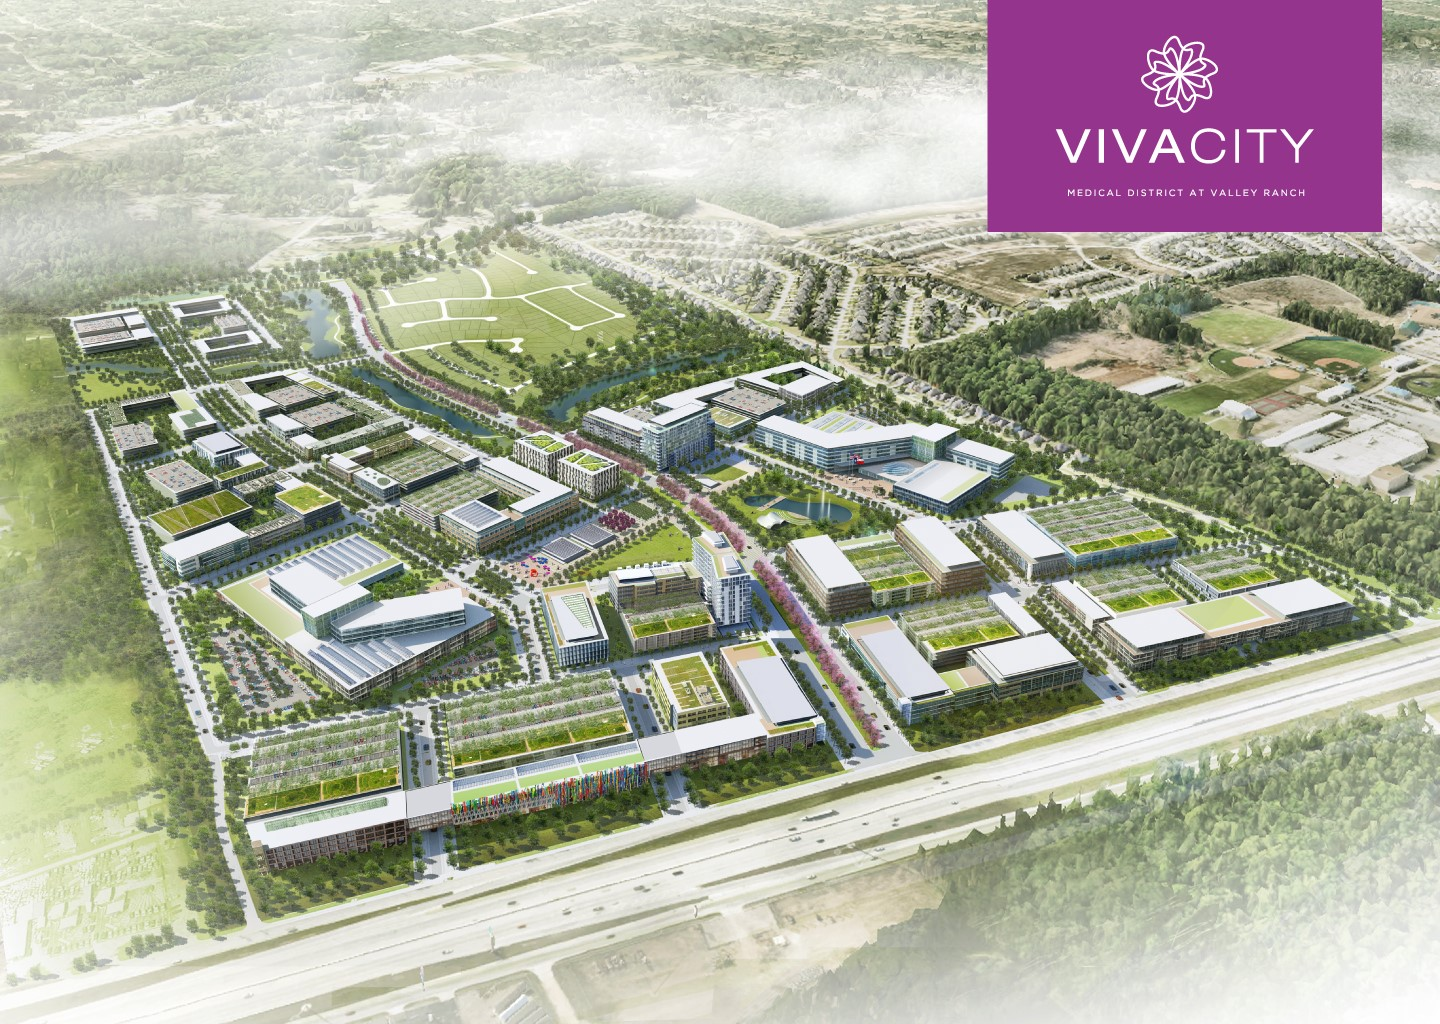 Vivacity Medial District at Valley Ranch